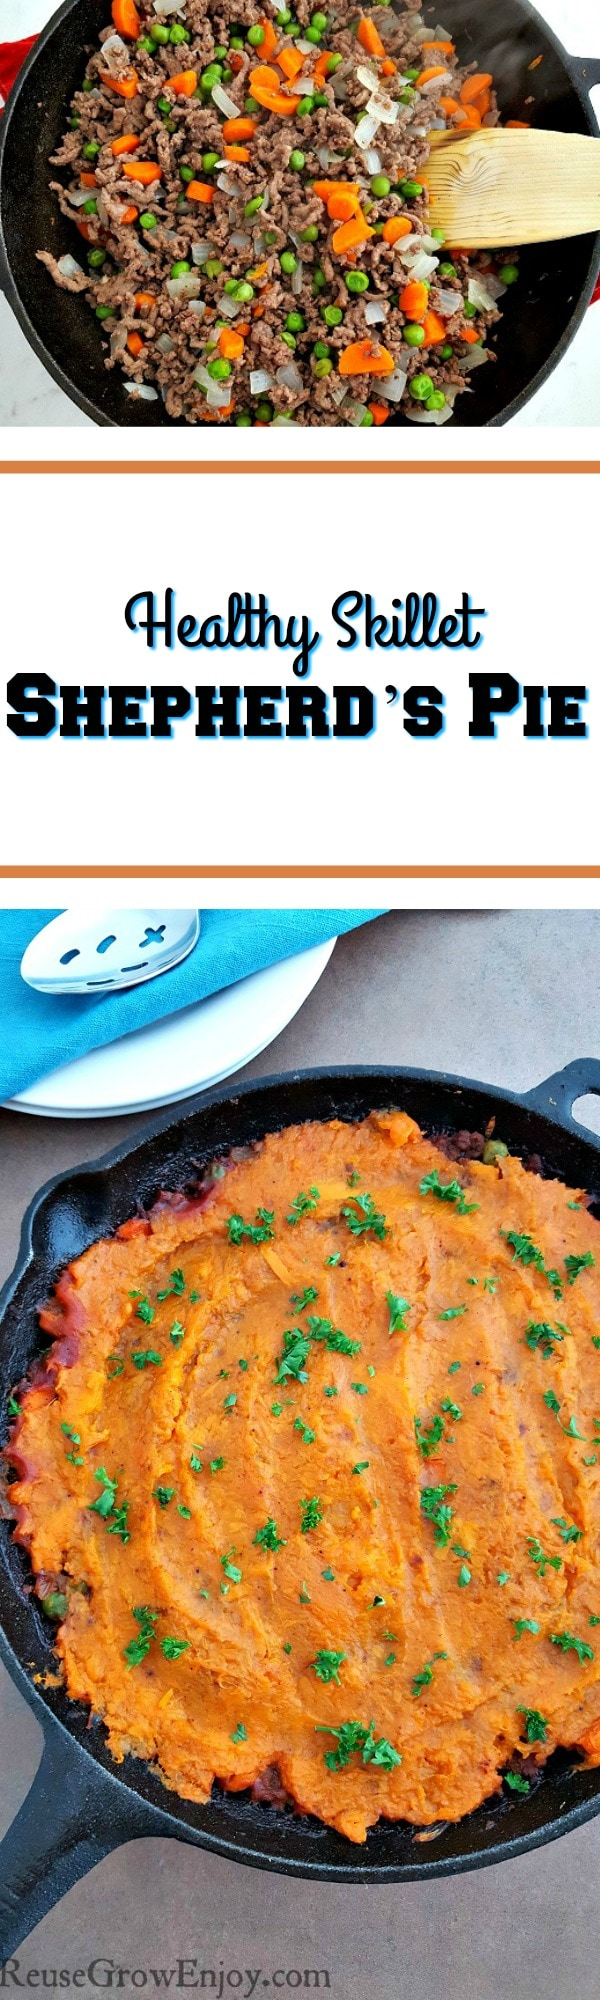 If you are looking for a new and healthy dinner option, check this out. It is a recipe for healthy skillet shepherd's pie!